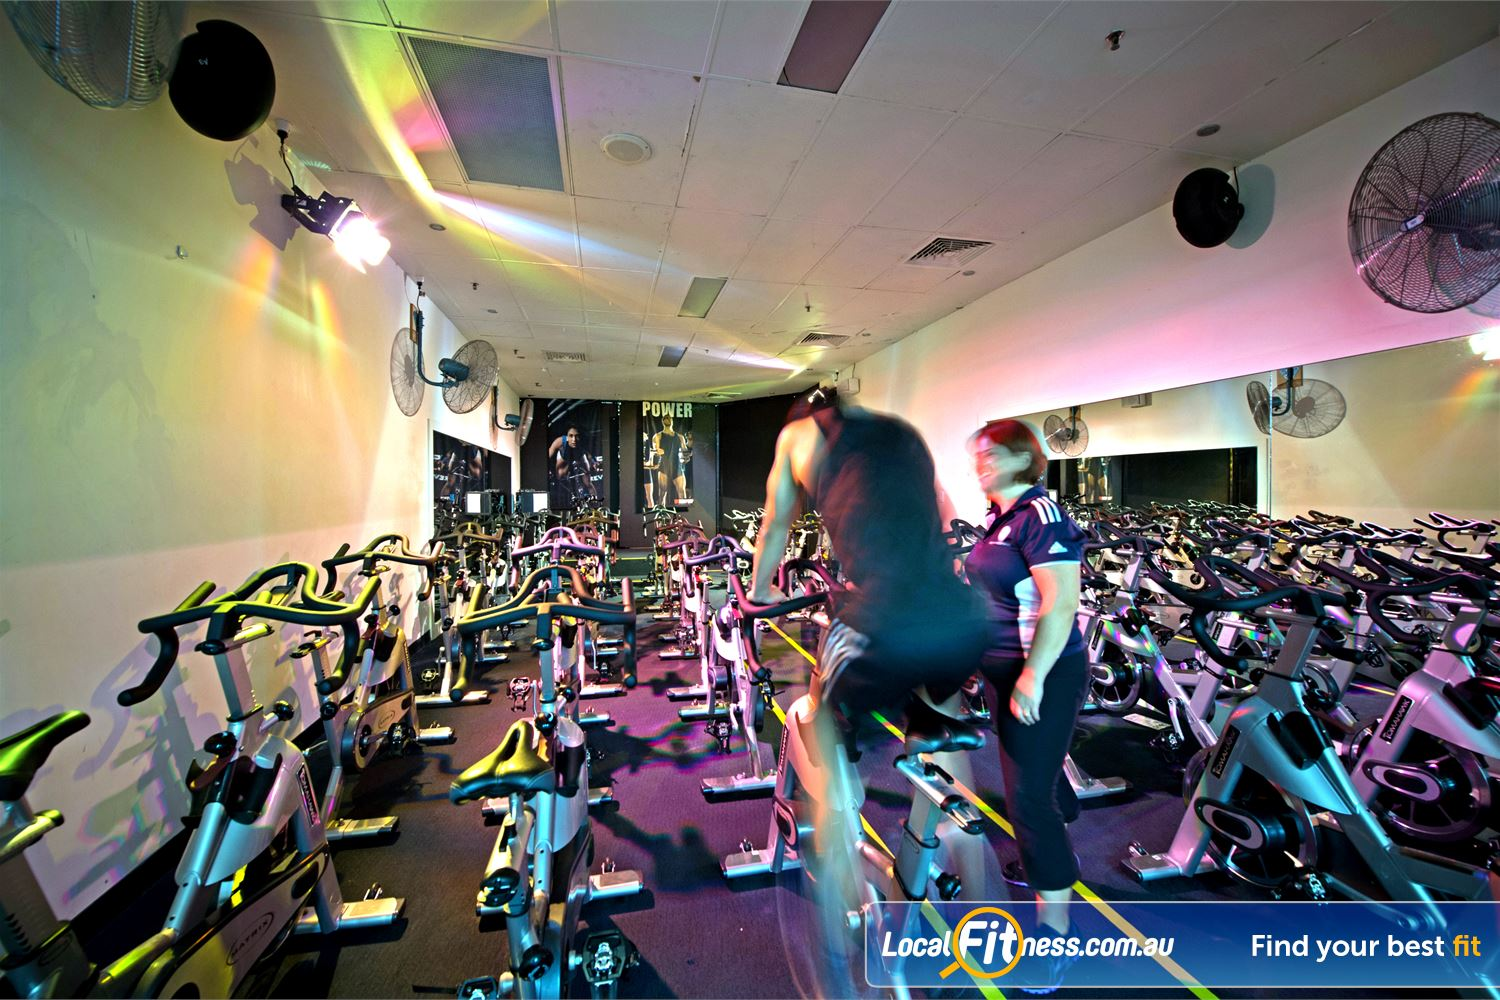 Goodlife Health Clubs Near Peppermint Grove Dedicated Cottesloe spin cycle studio.